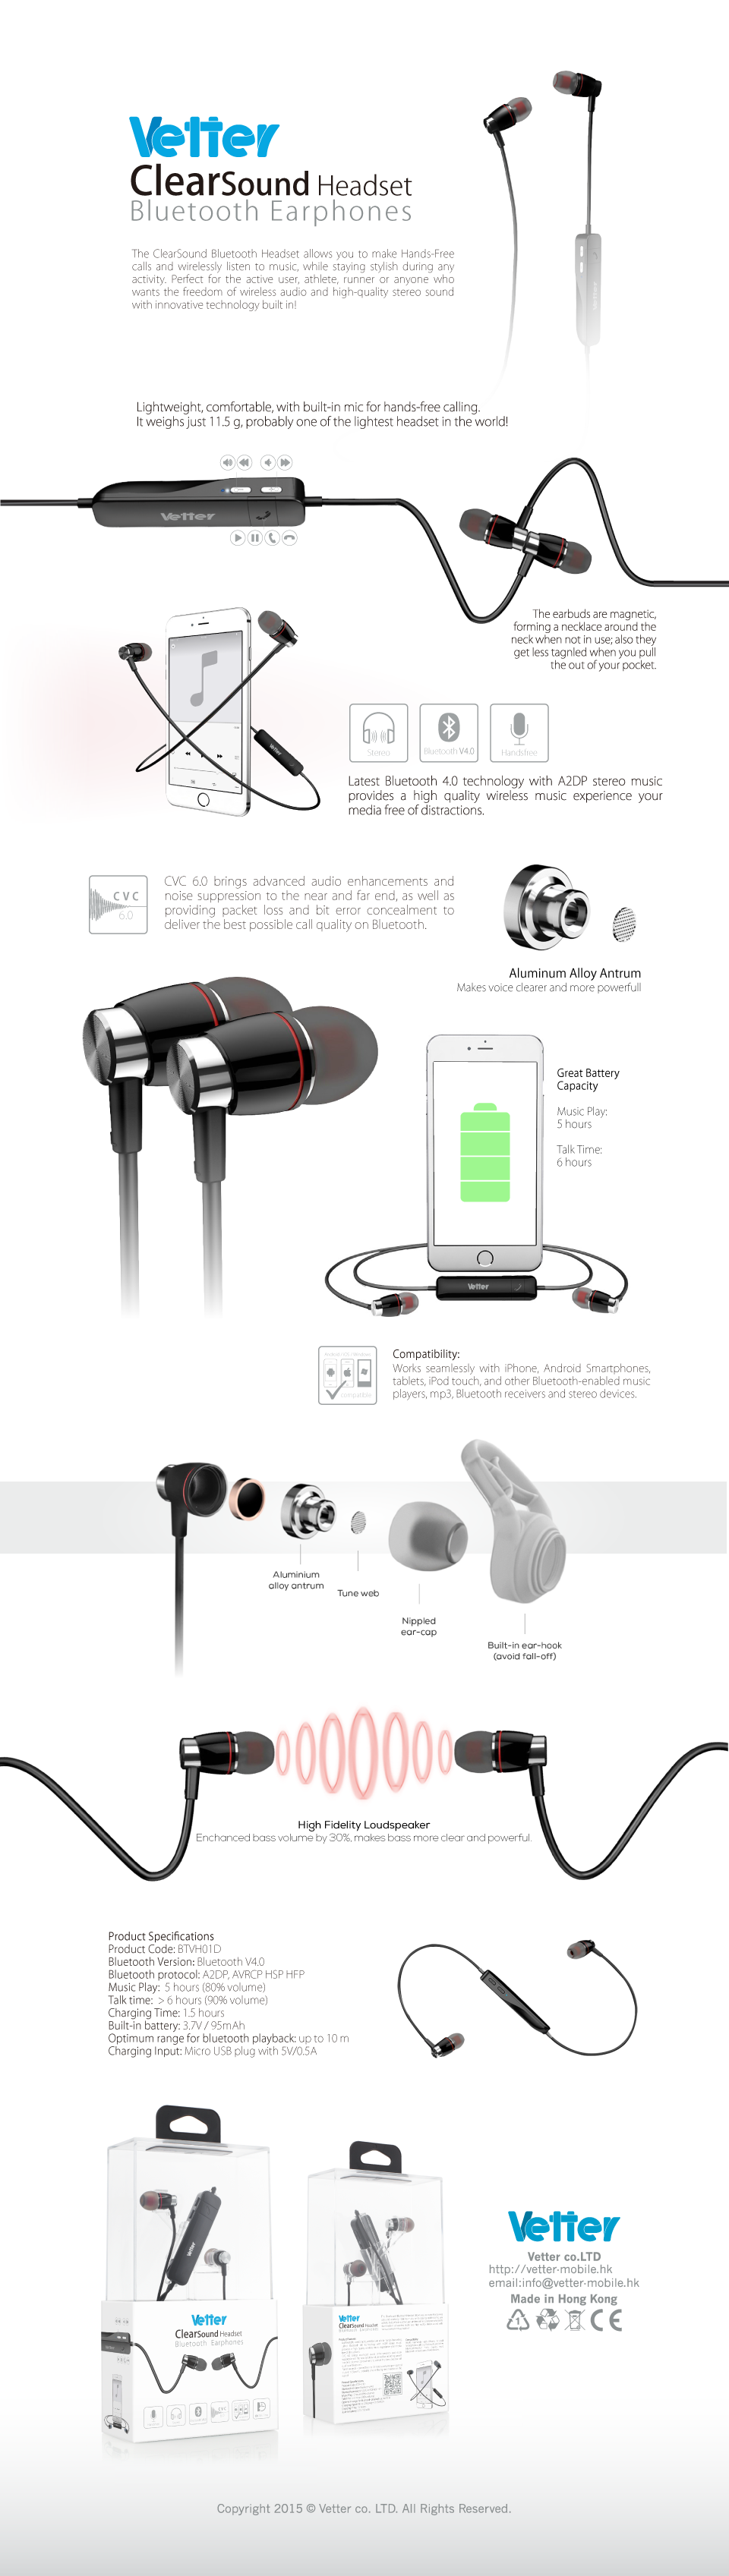 [20160107]_ClearSound-Bluetooth-Headset-Prezentare-4.png